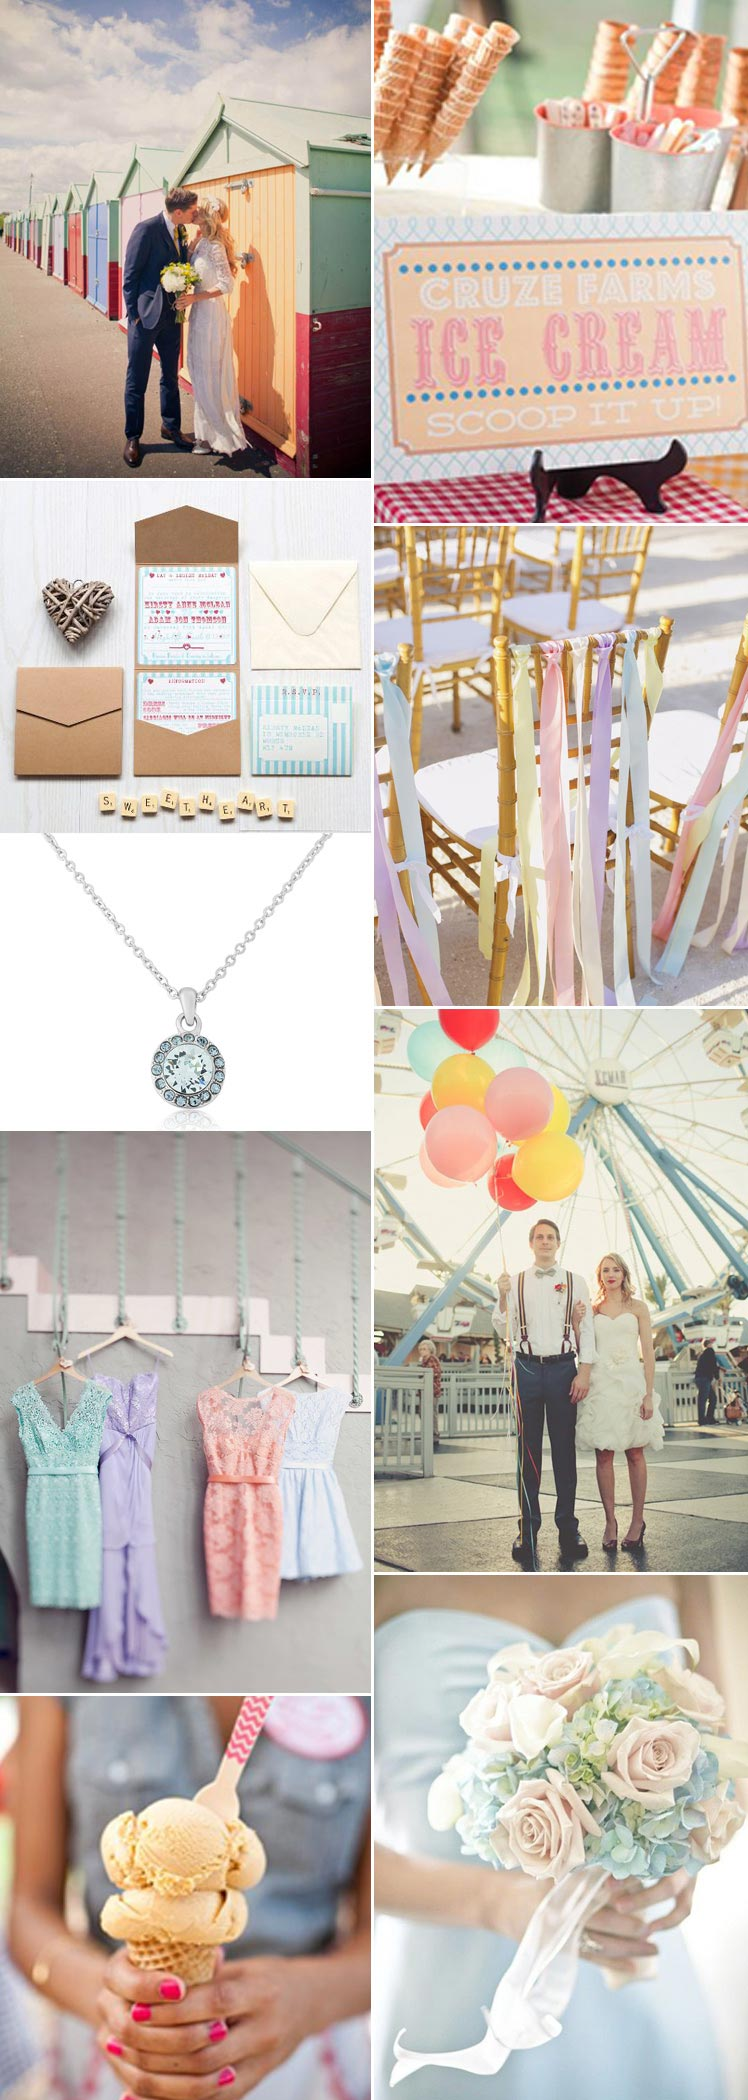 Seaside wedding theme ideas